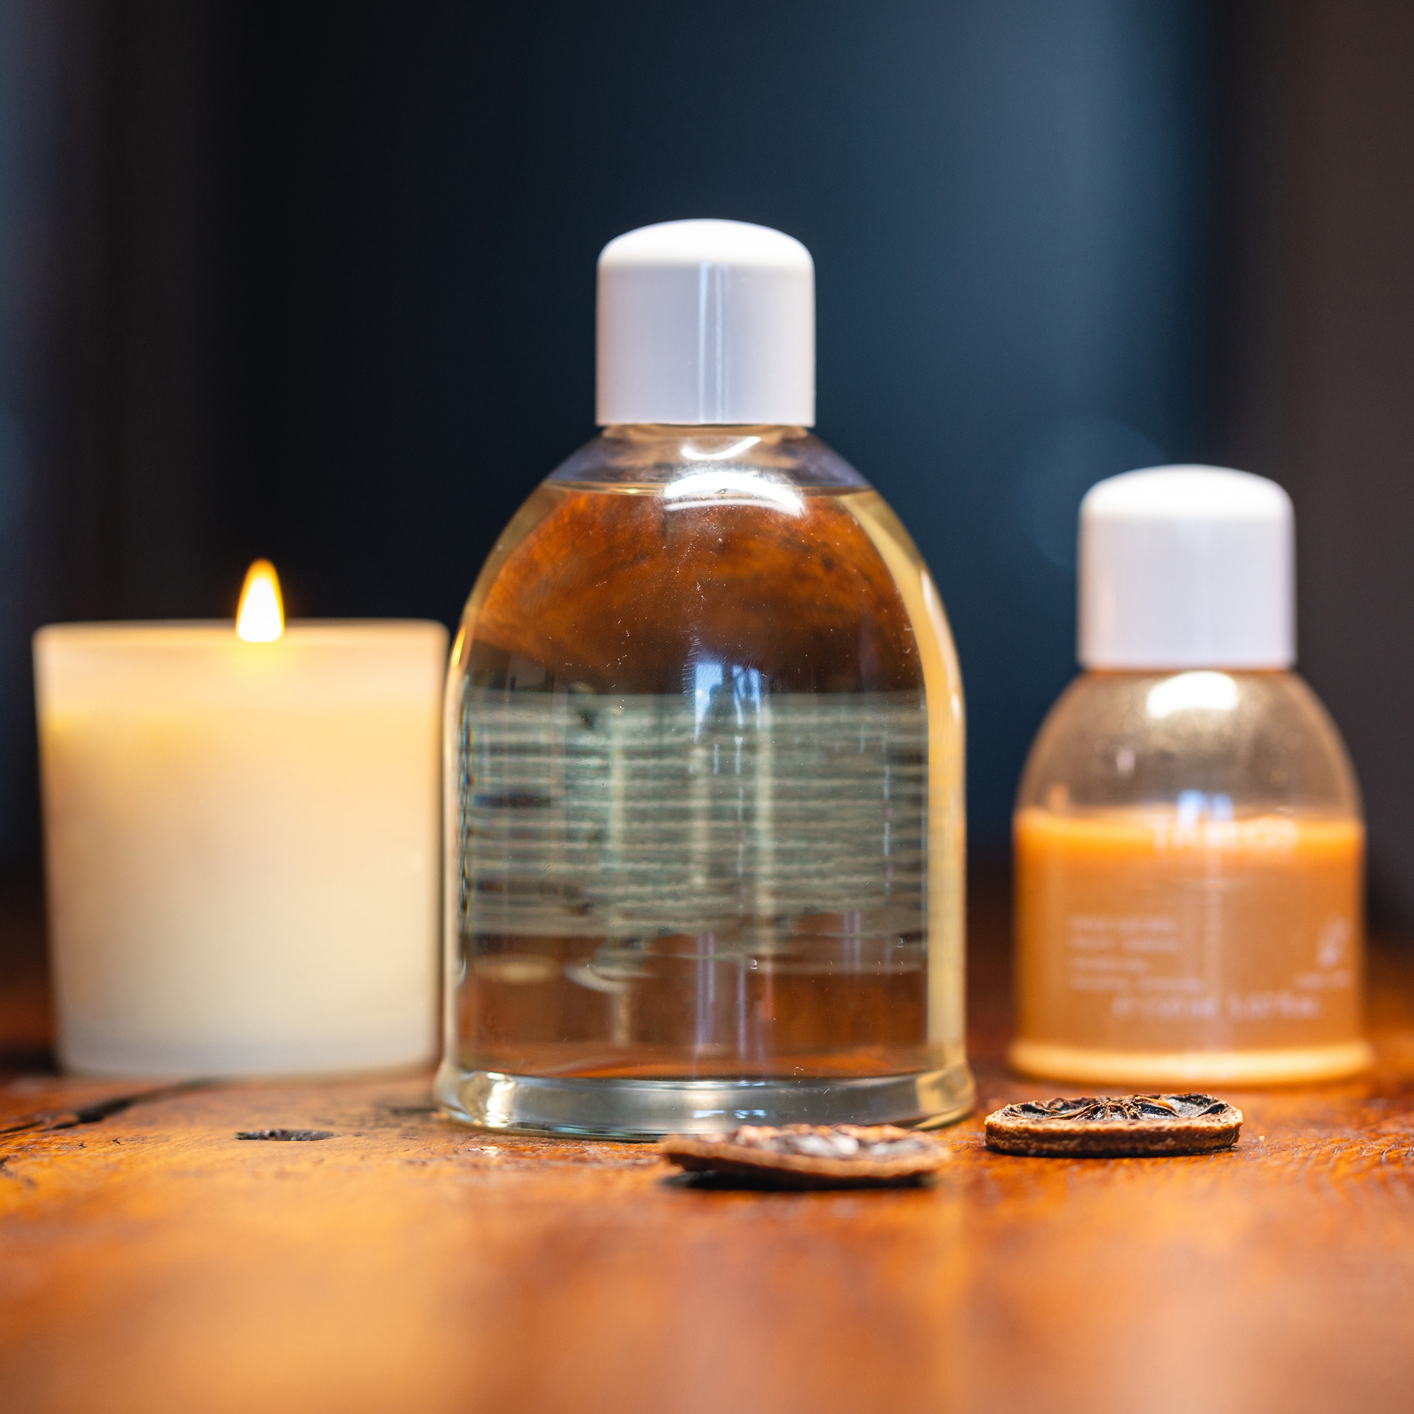 Image of massage oils